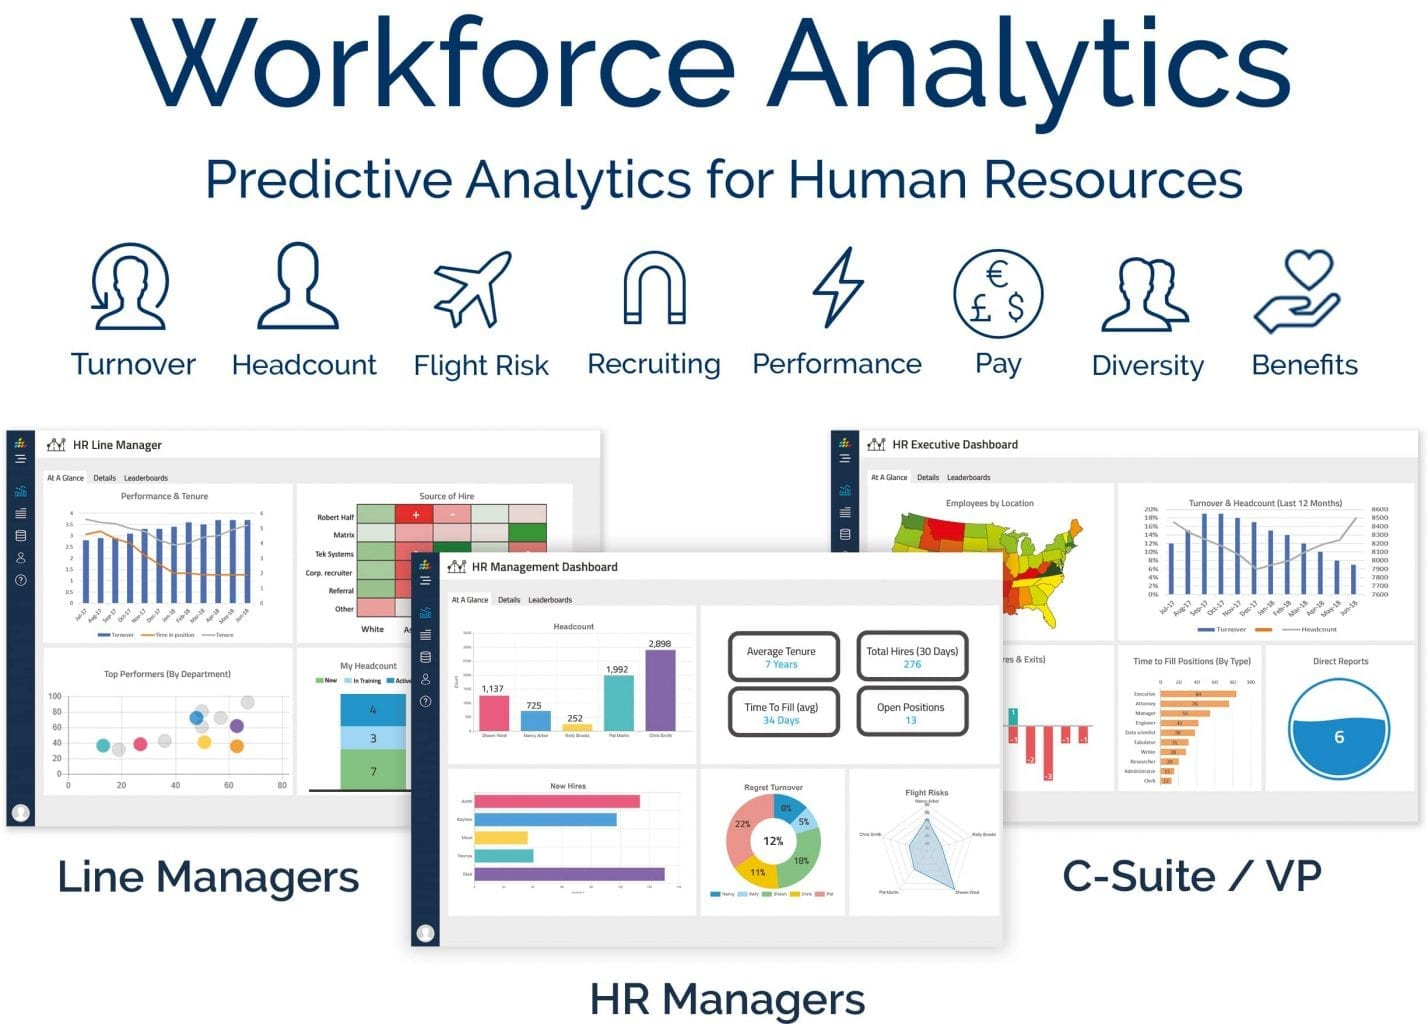 Workforce Analytics, predictive analytics for HR. #1 HR analytics software.